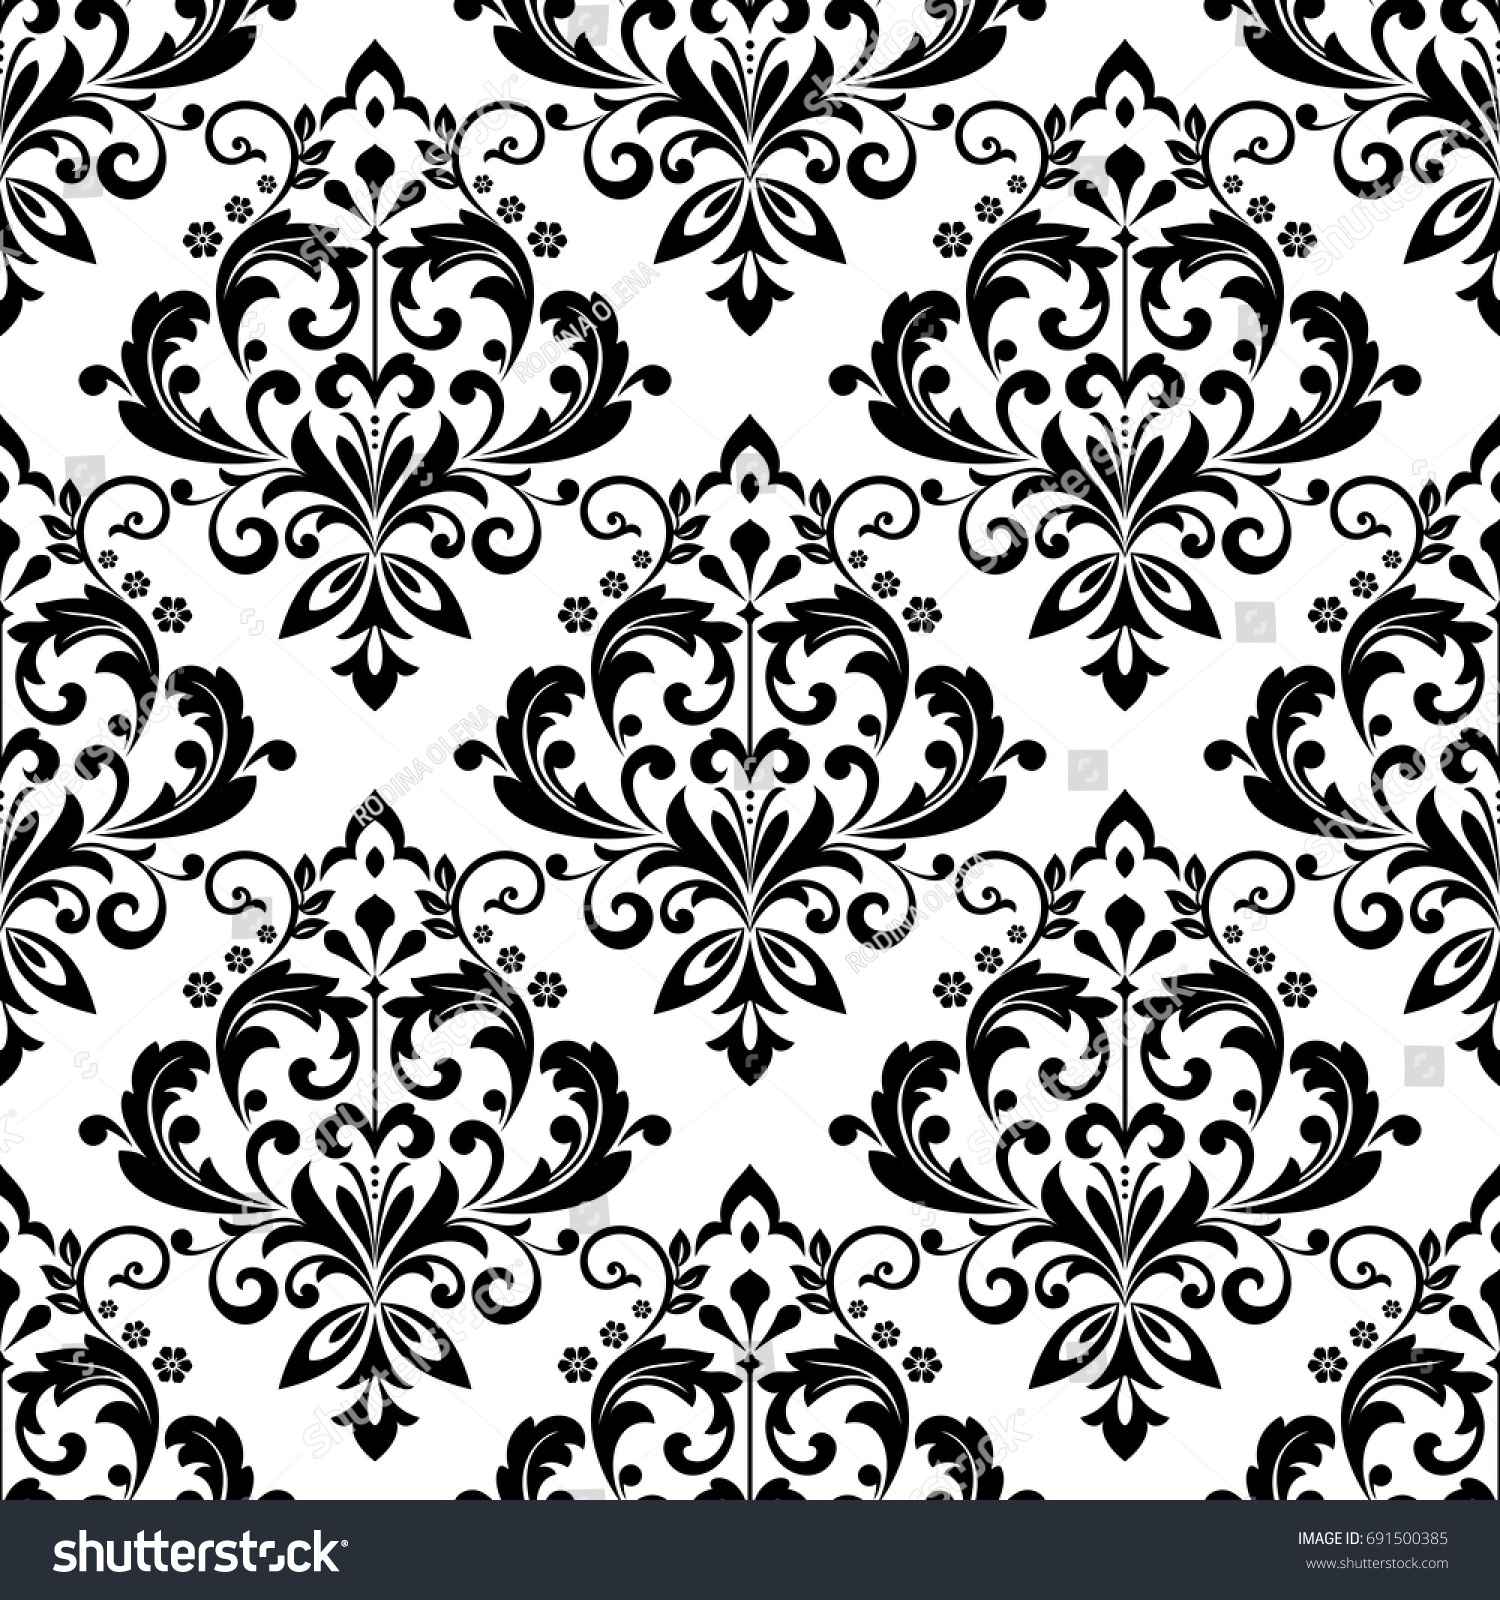 Damask wallpaper seamless vector background black stock for Black white damask wallpaper mural